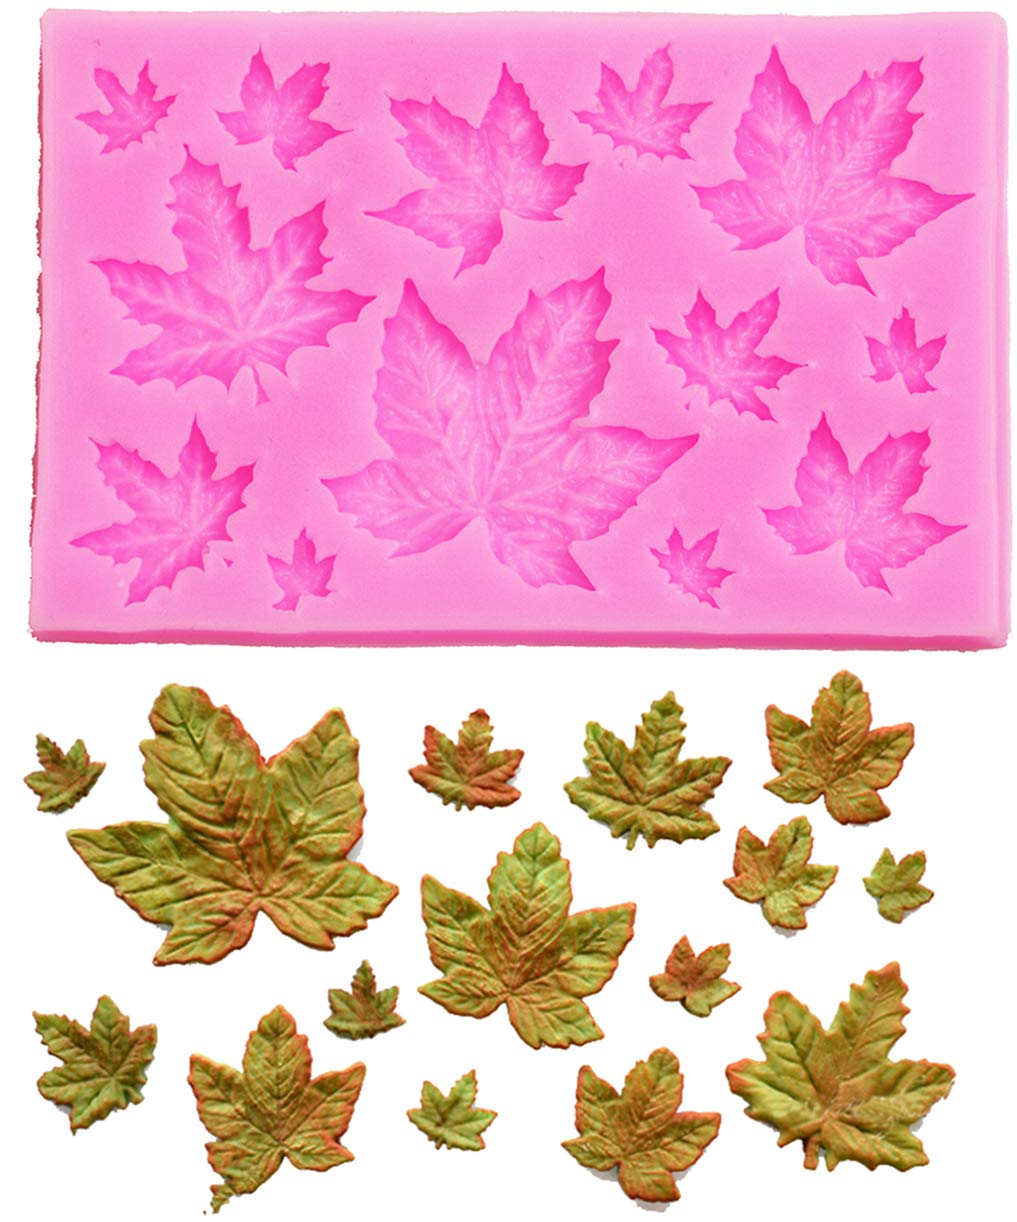 Kisweet 3D Maple Leaves Gum Paste Flower Tools Fondant Chocolate Molds Baking Cookie Moulds Sugar Craft Polymer Clay Decorating Molds